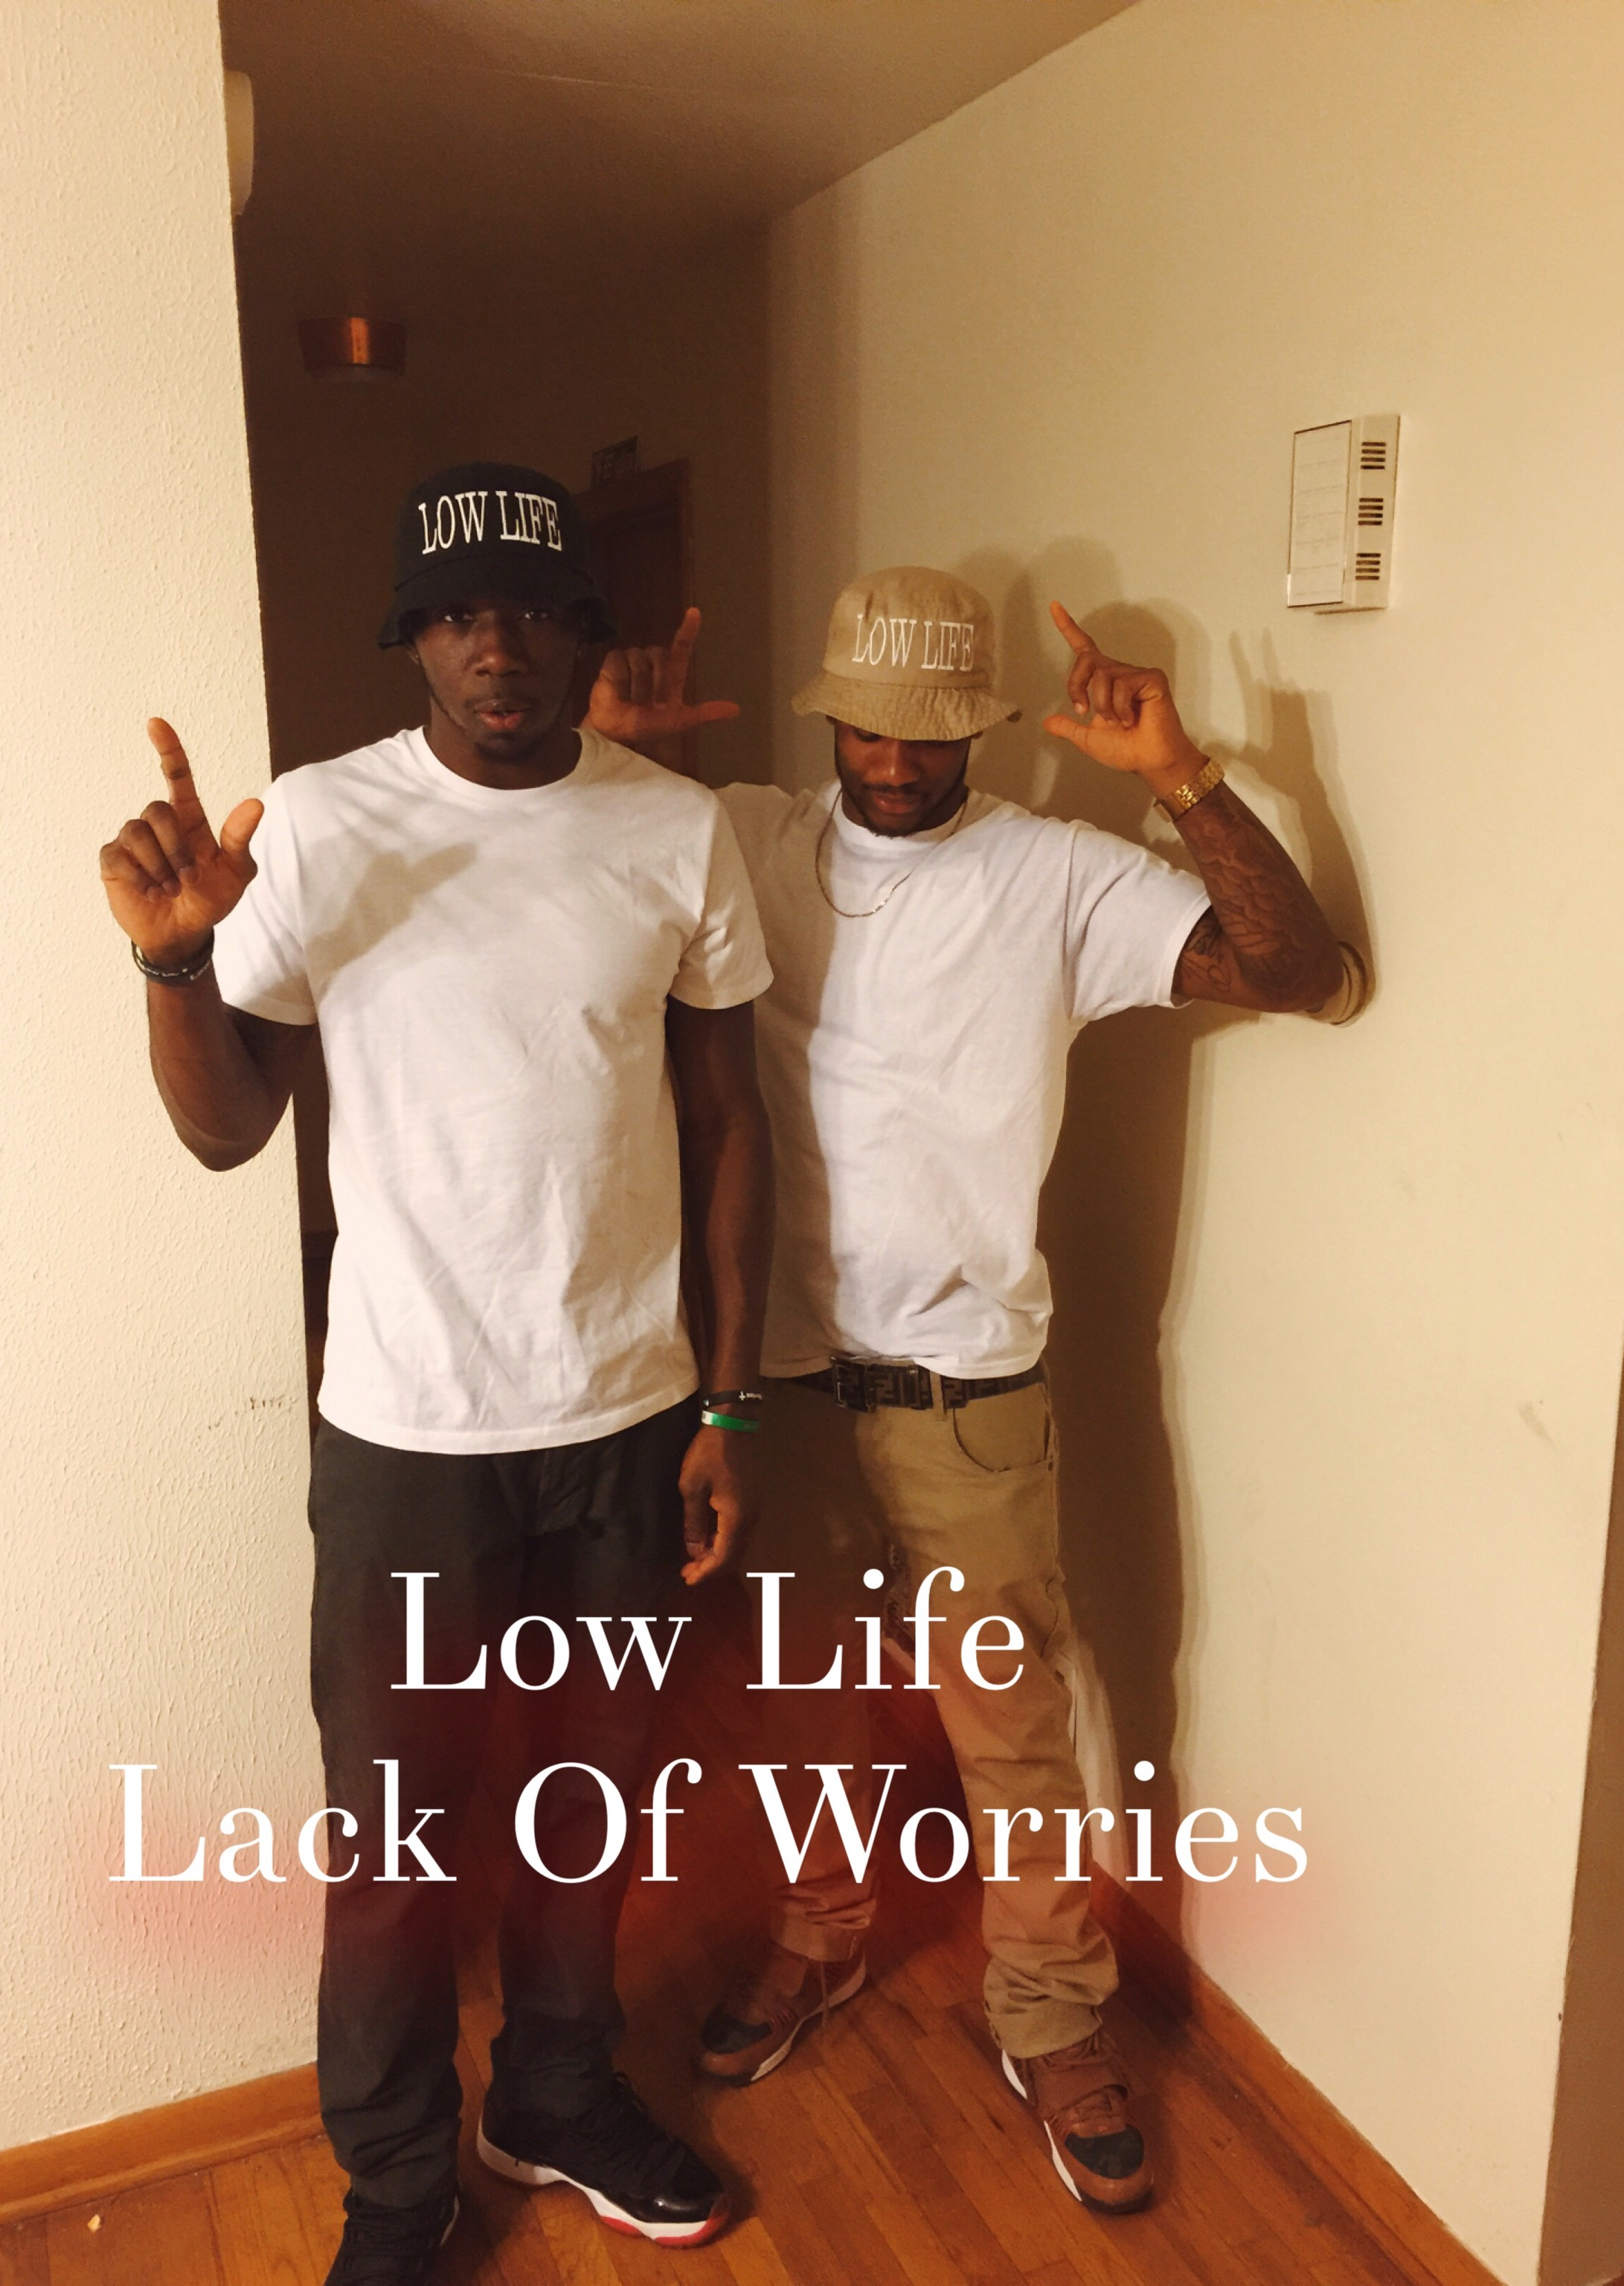 L's #LackOFWorries